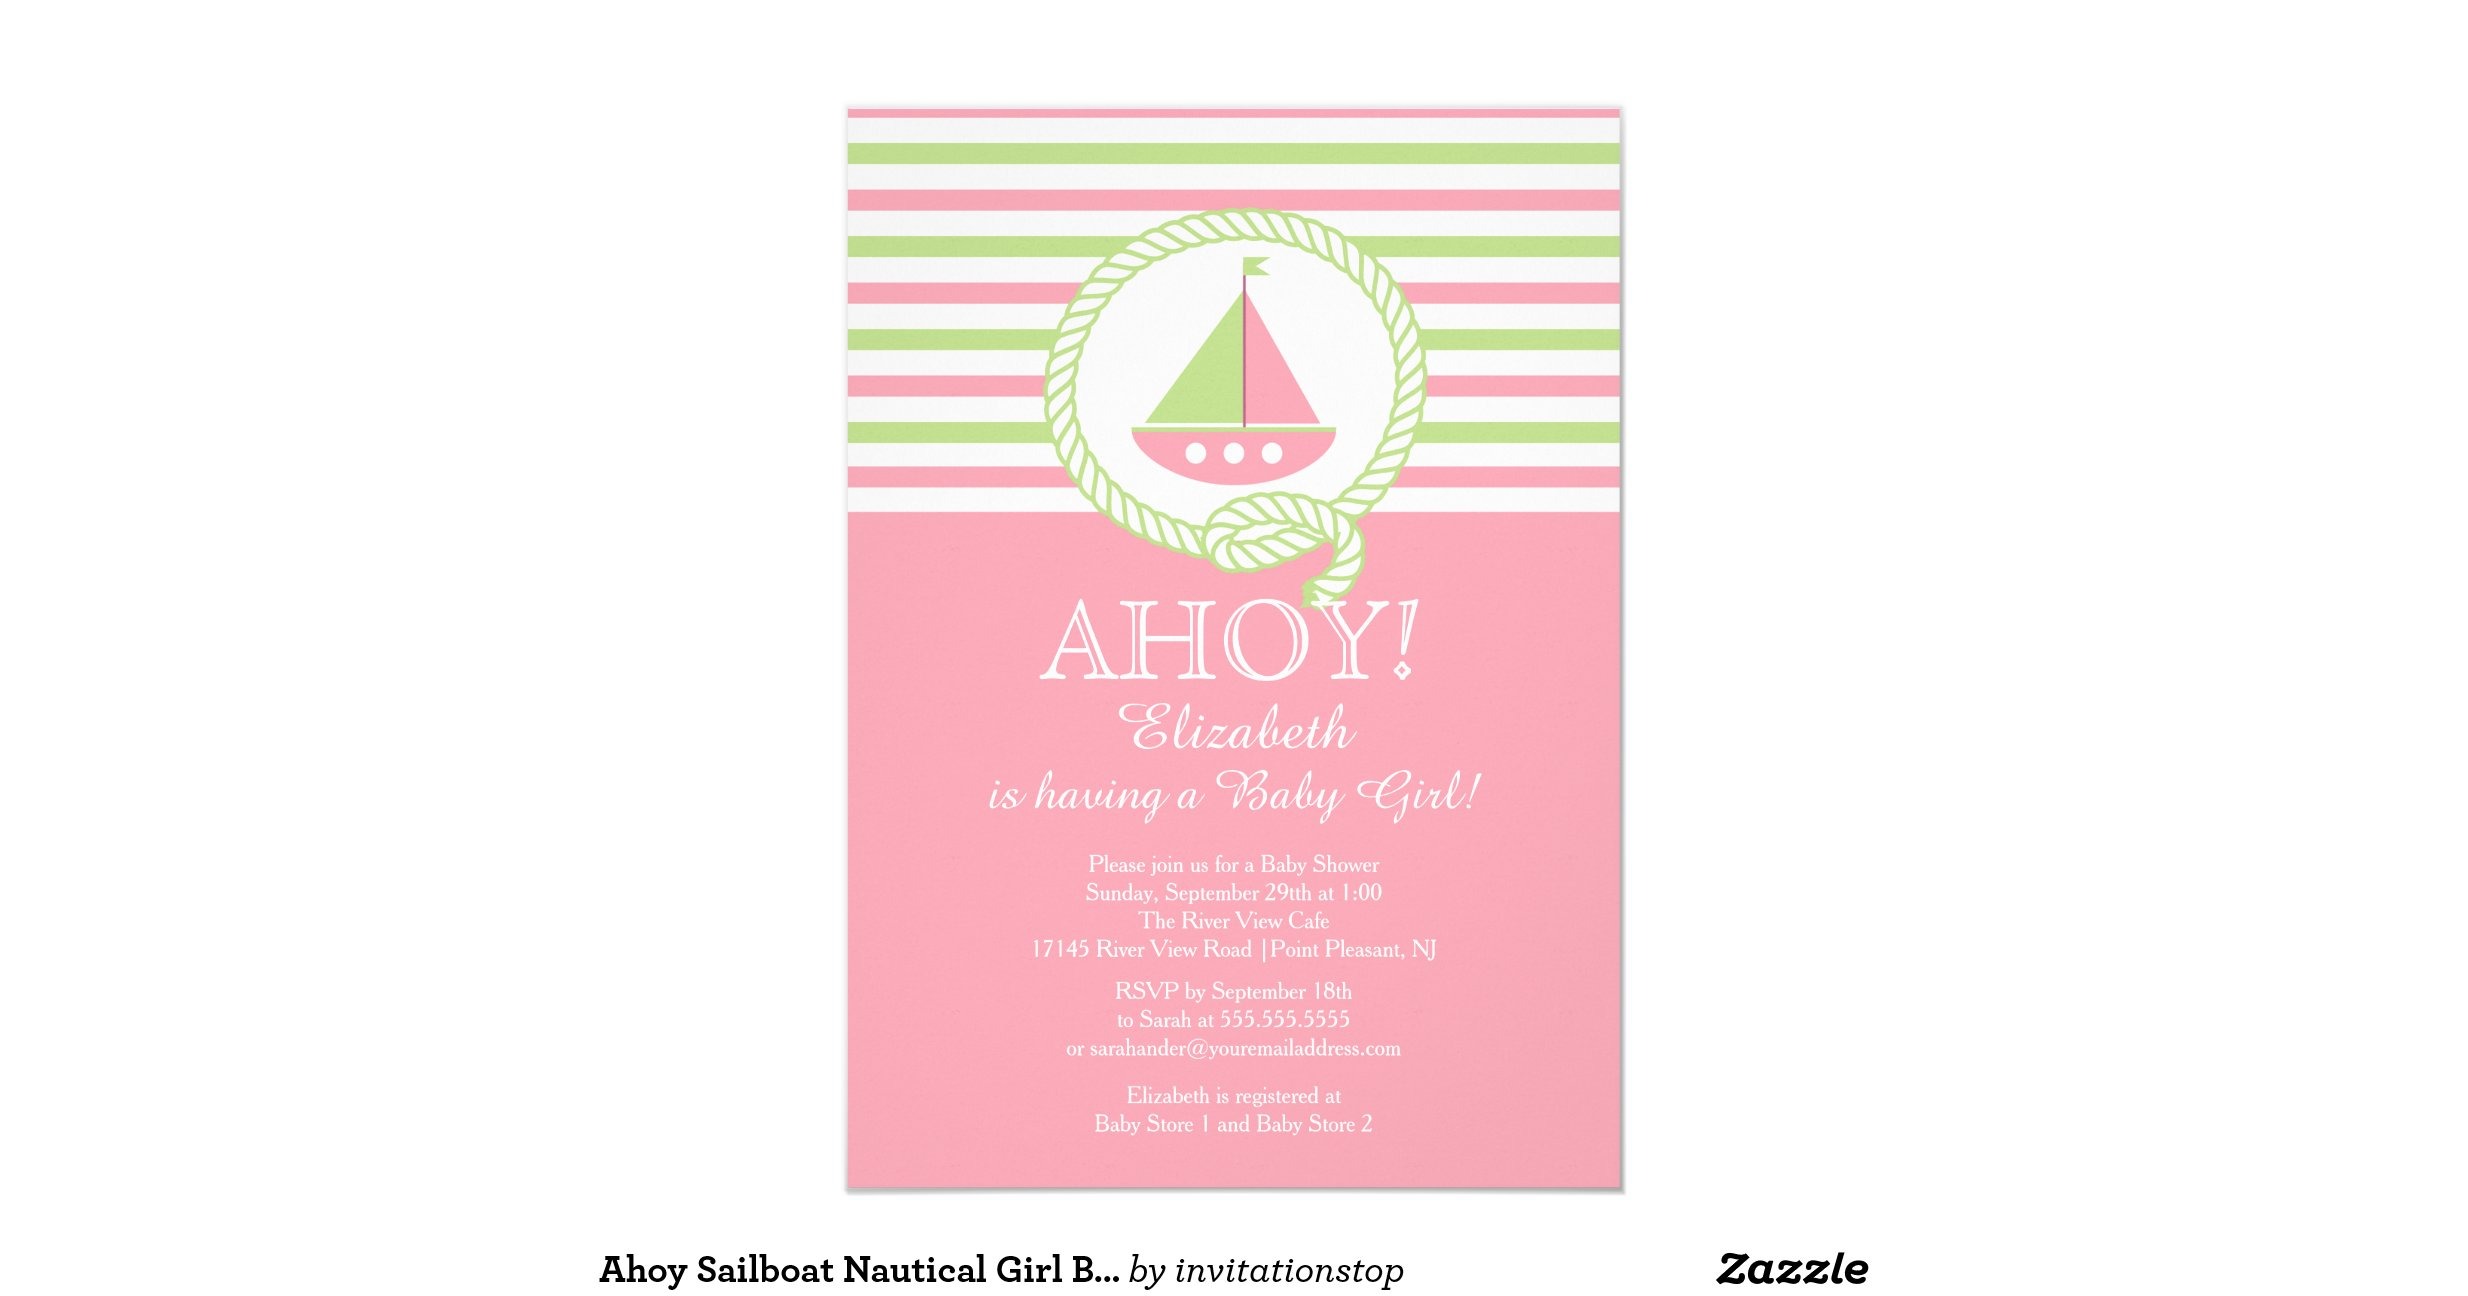 ahoy sailboat nautical girl baby shower invitation